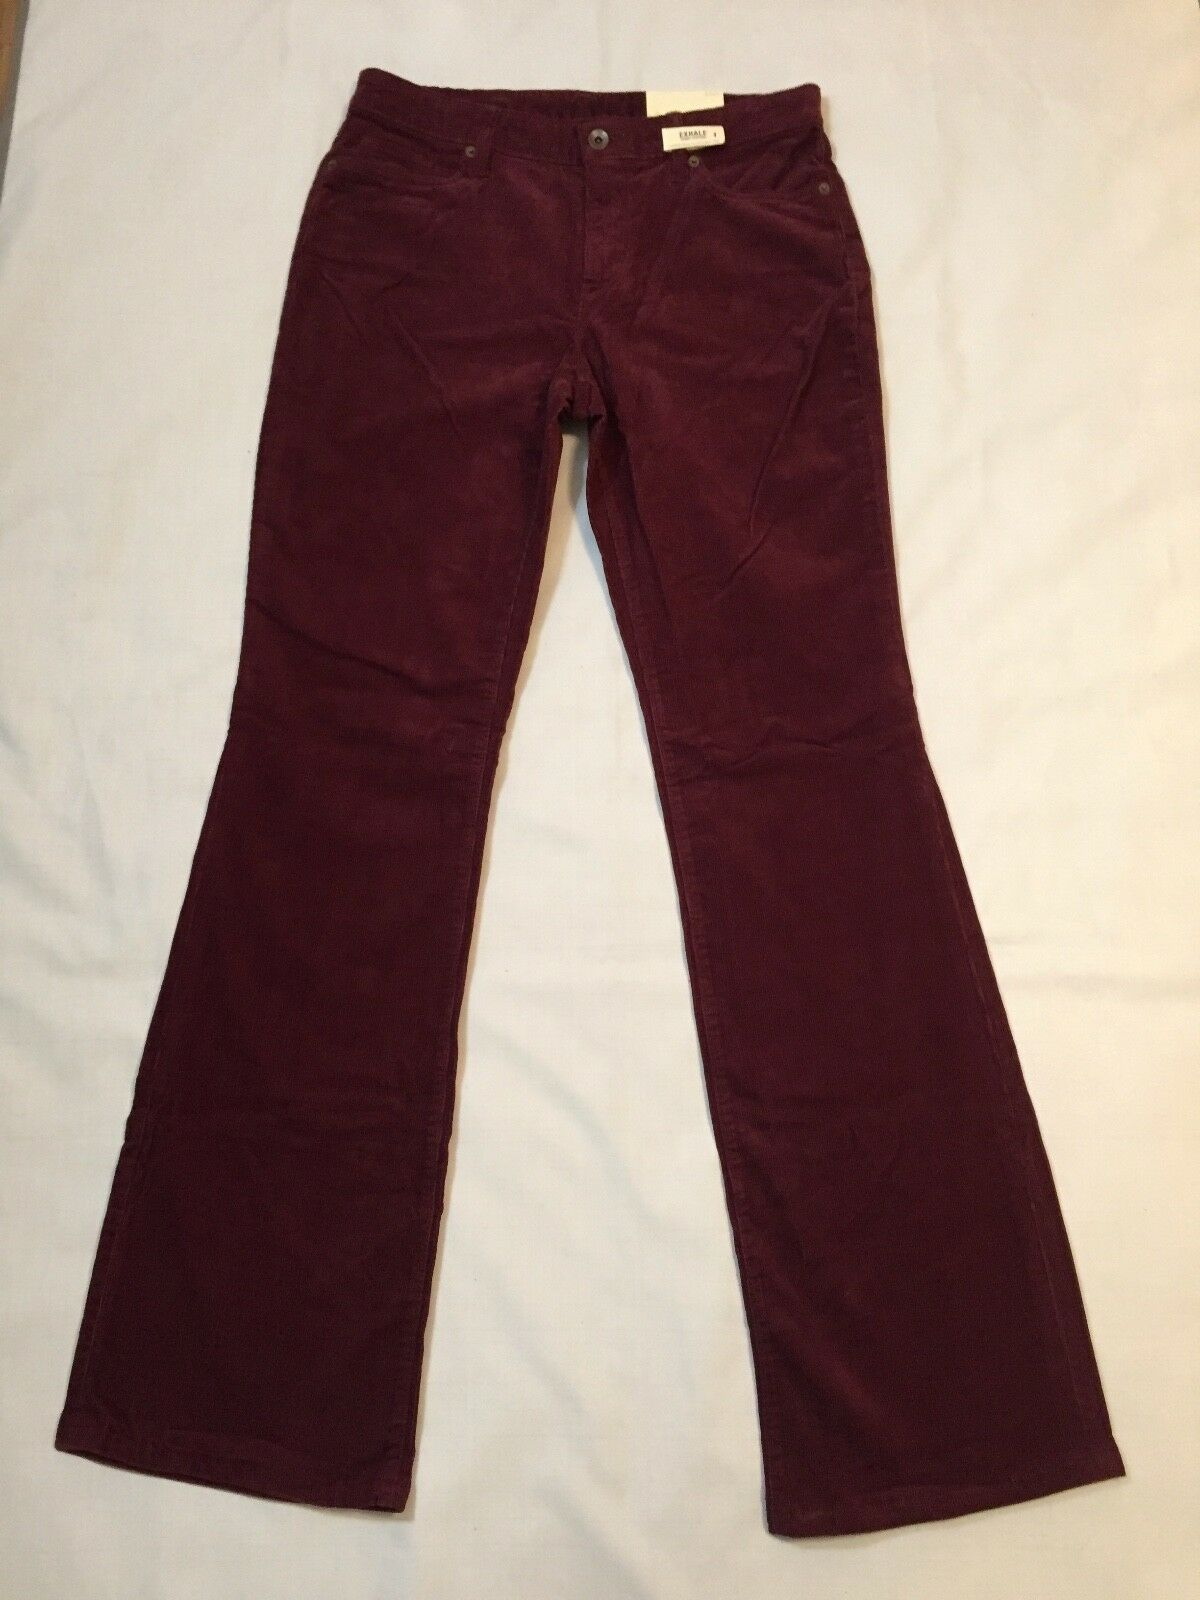 Lands' End Women's Corduroy Bootcut Leg Pants Size 10 New with Tags